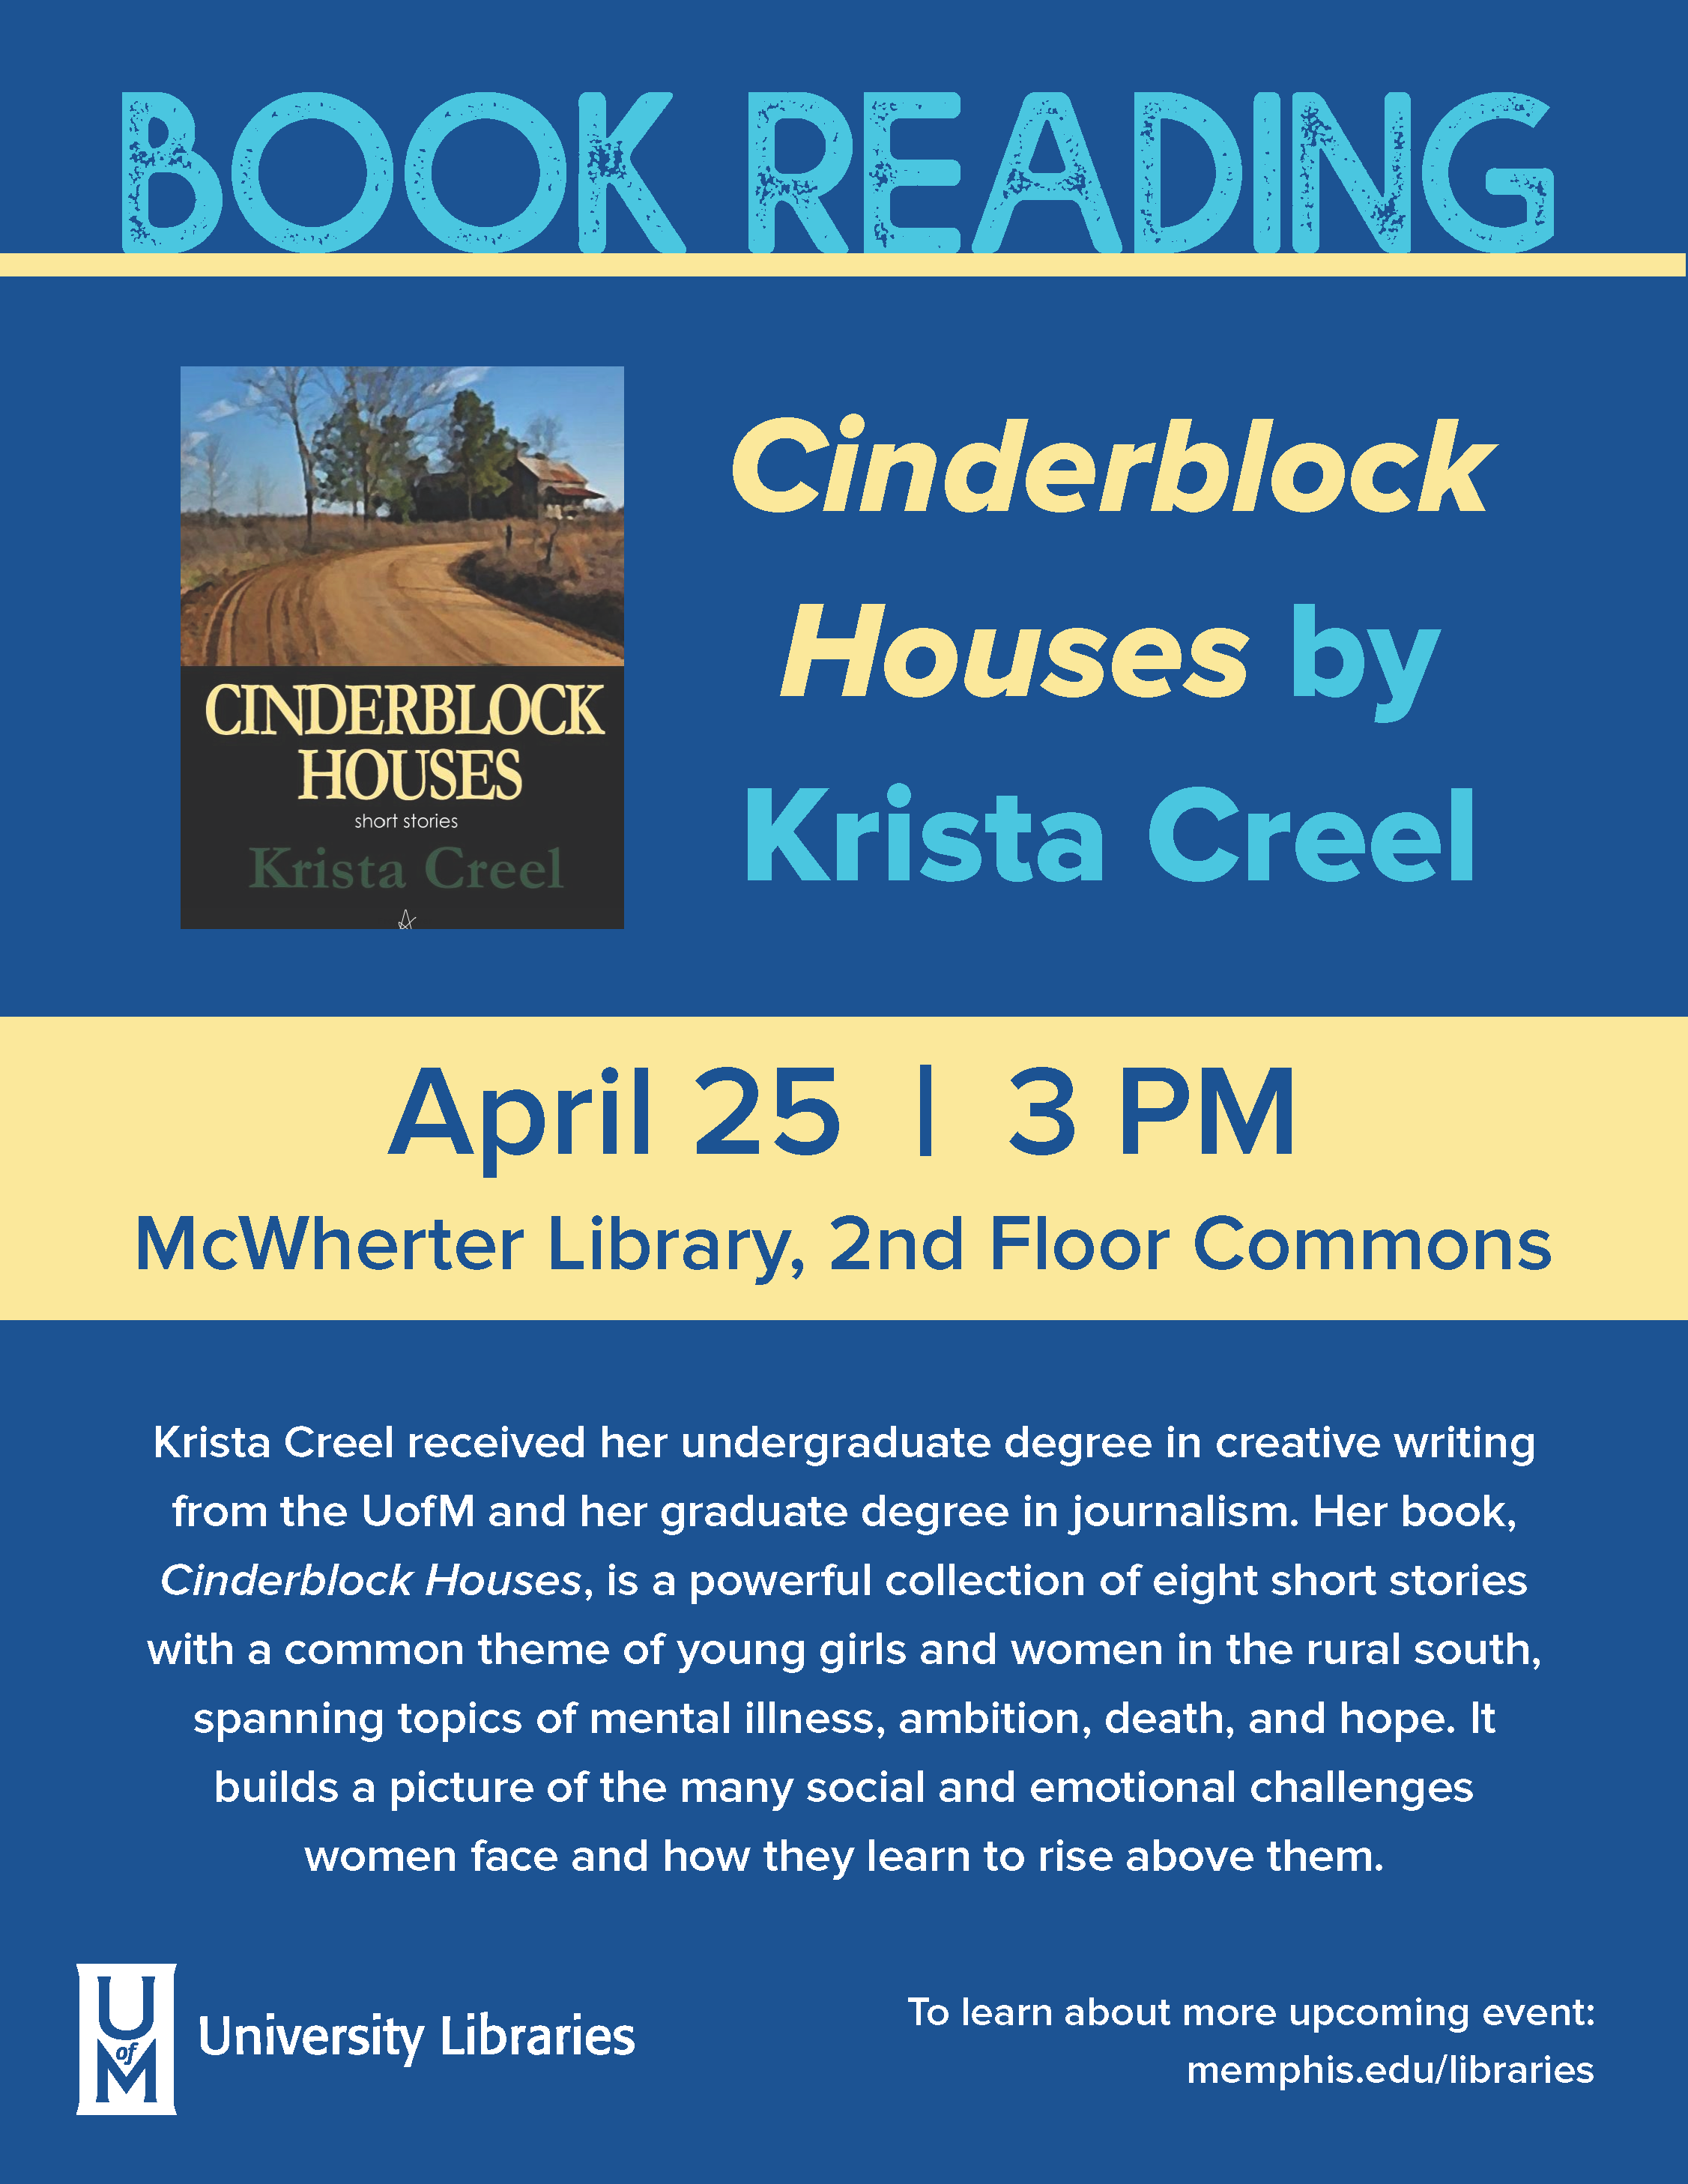 Book Reading: Cinderblock Houses by Krista Creel